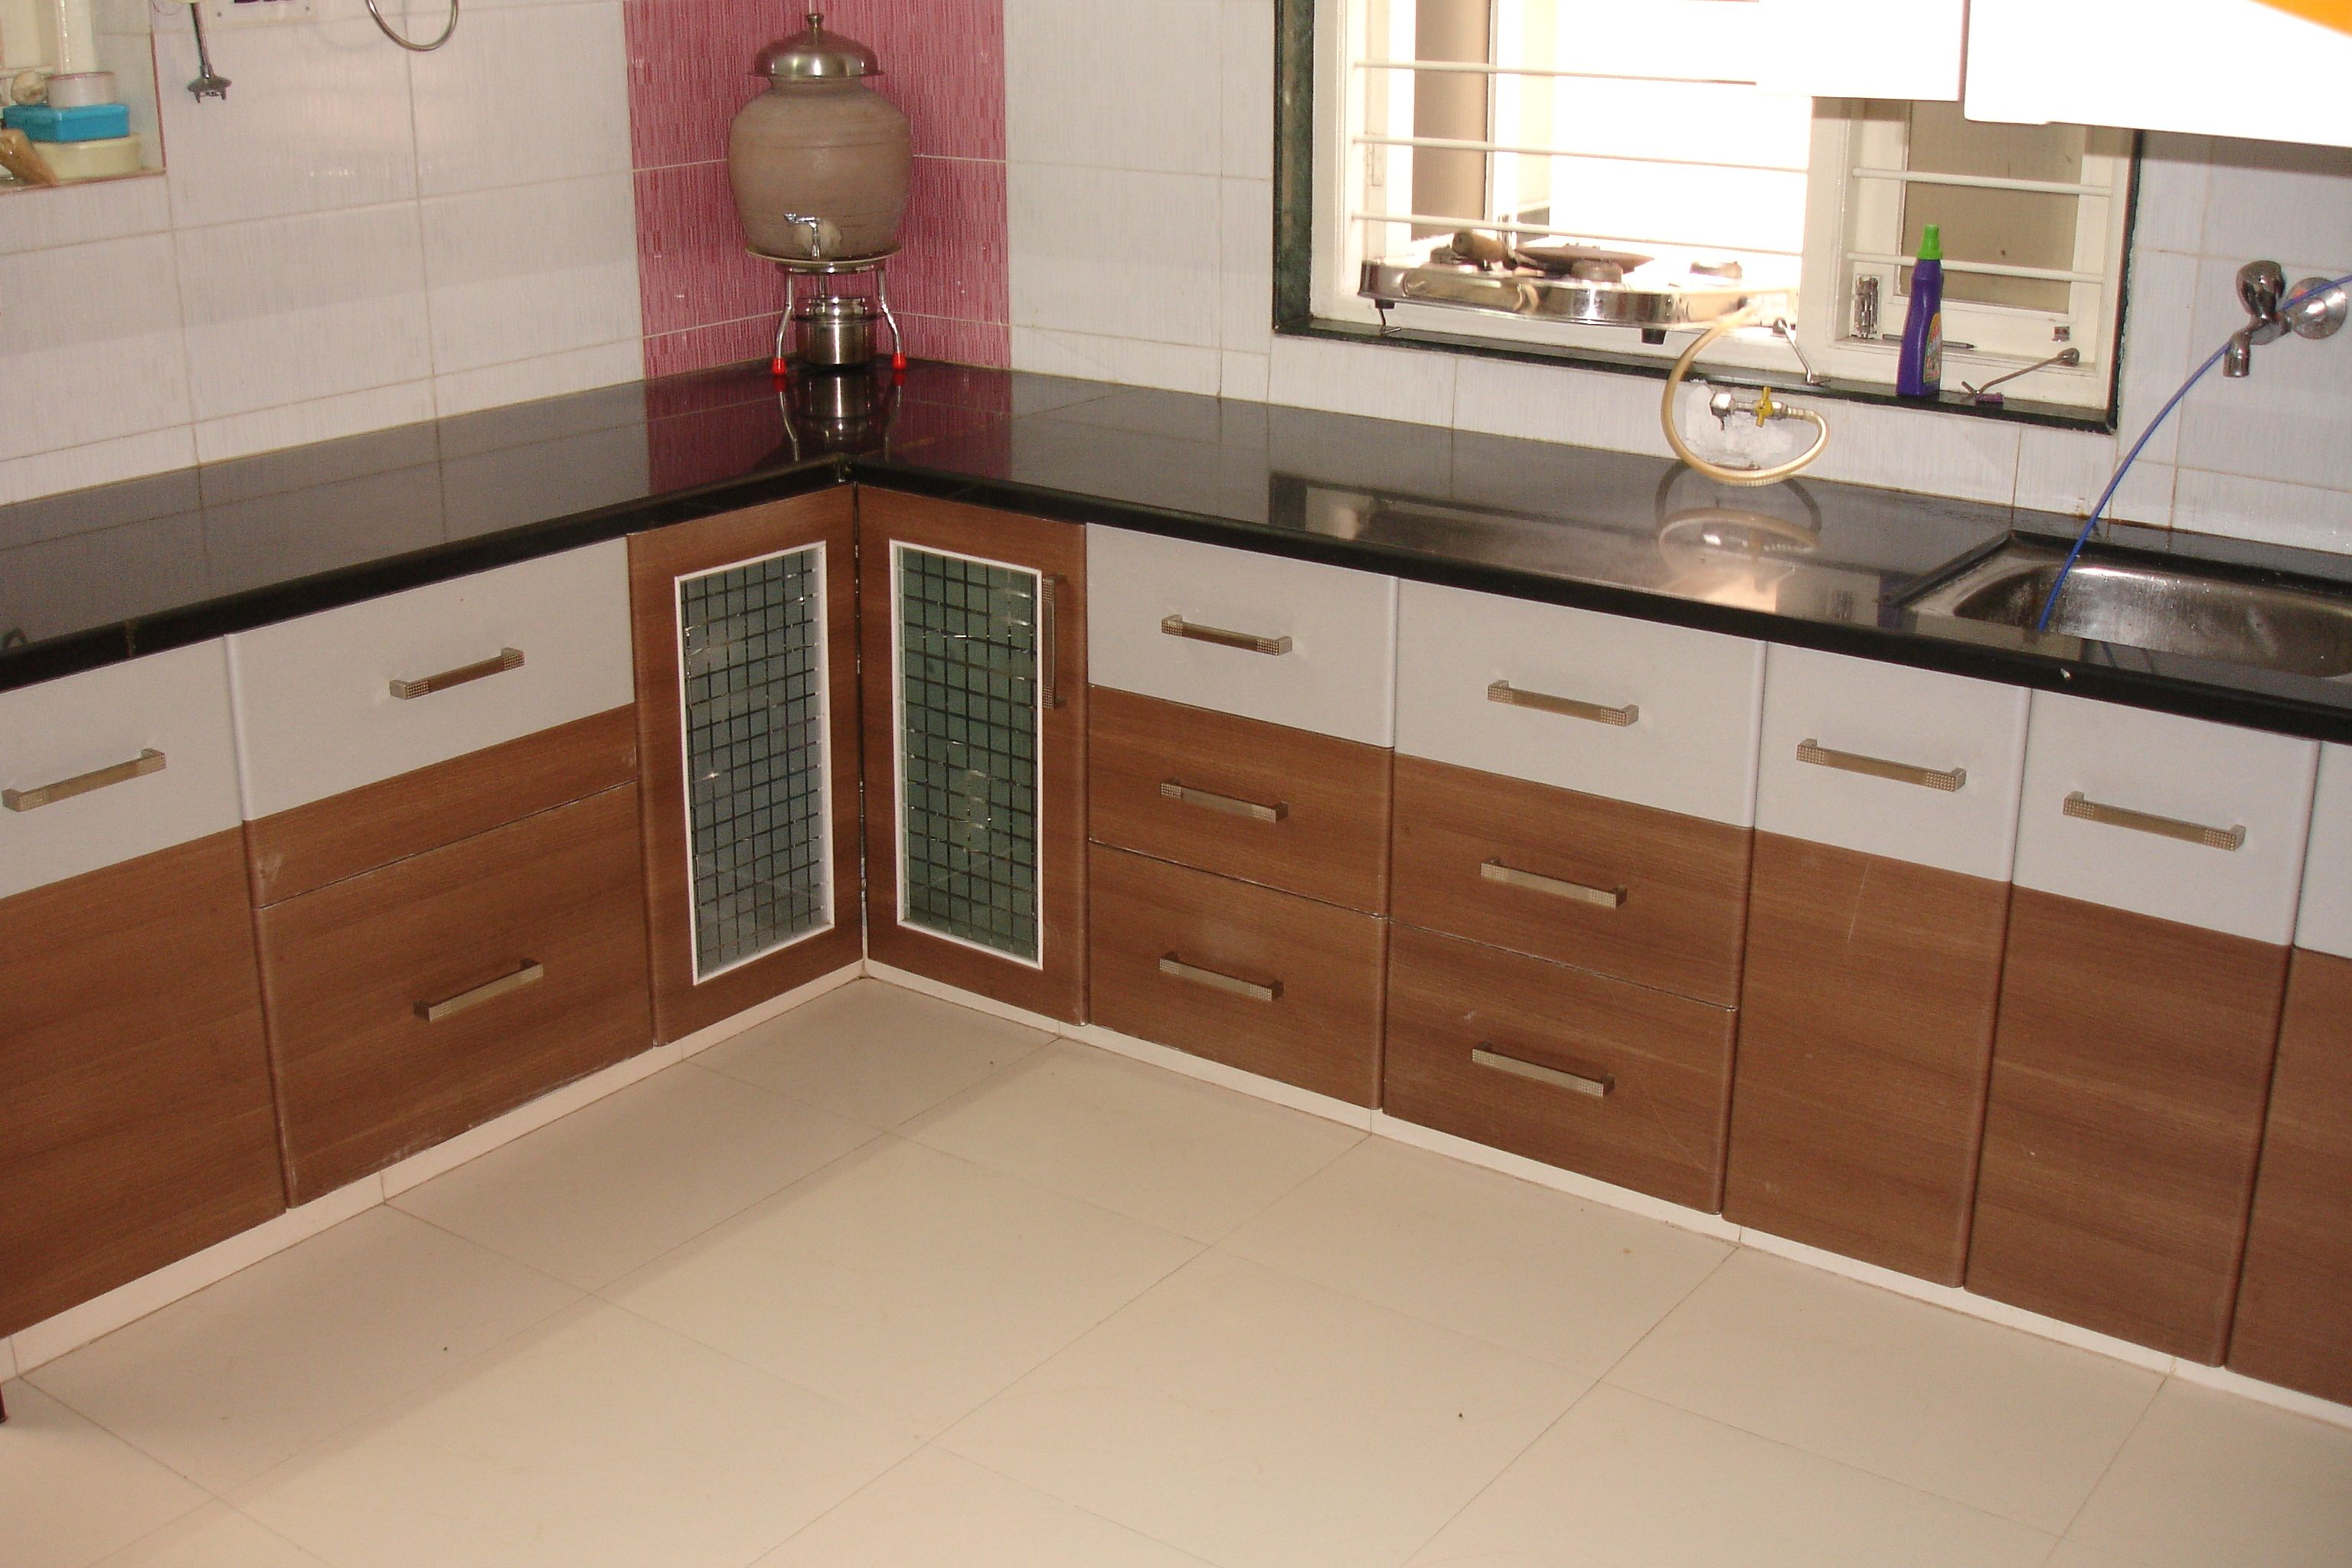 Perfect Modular Kitchen Cabinets Cost In India And Review In 2020 Kitchen Furniture Design Kitchen Design Kitchen Interior